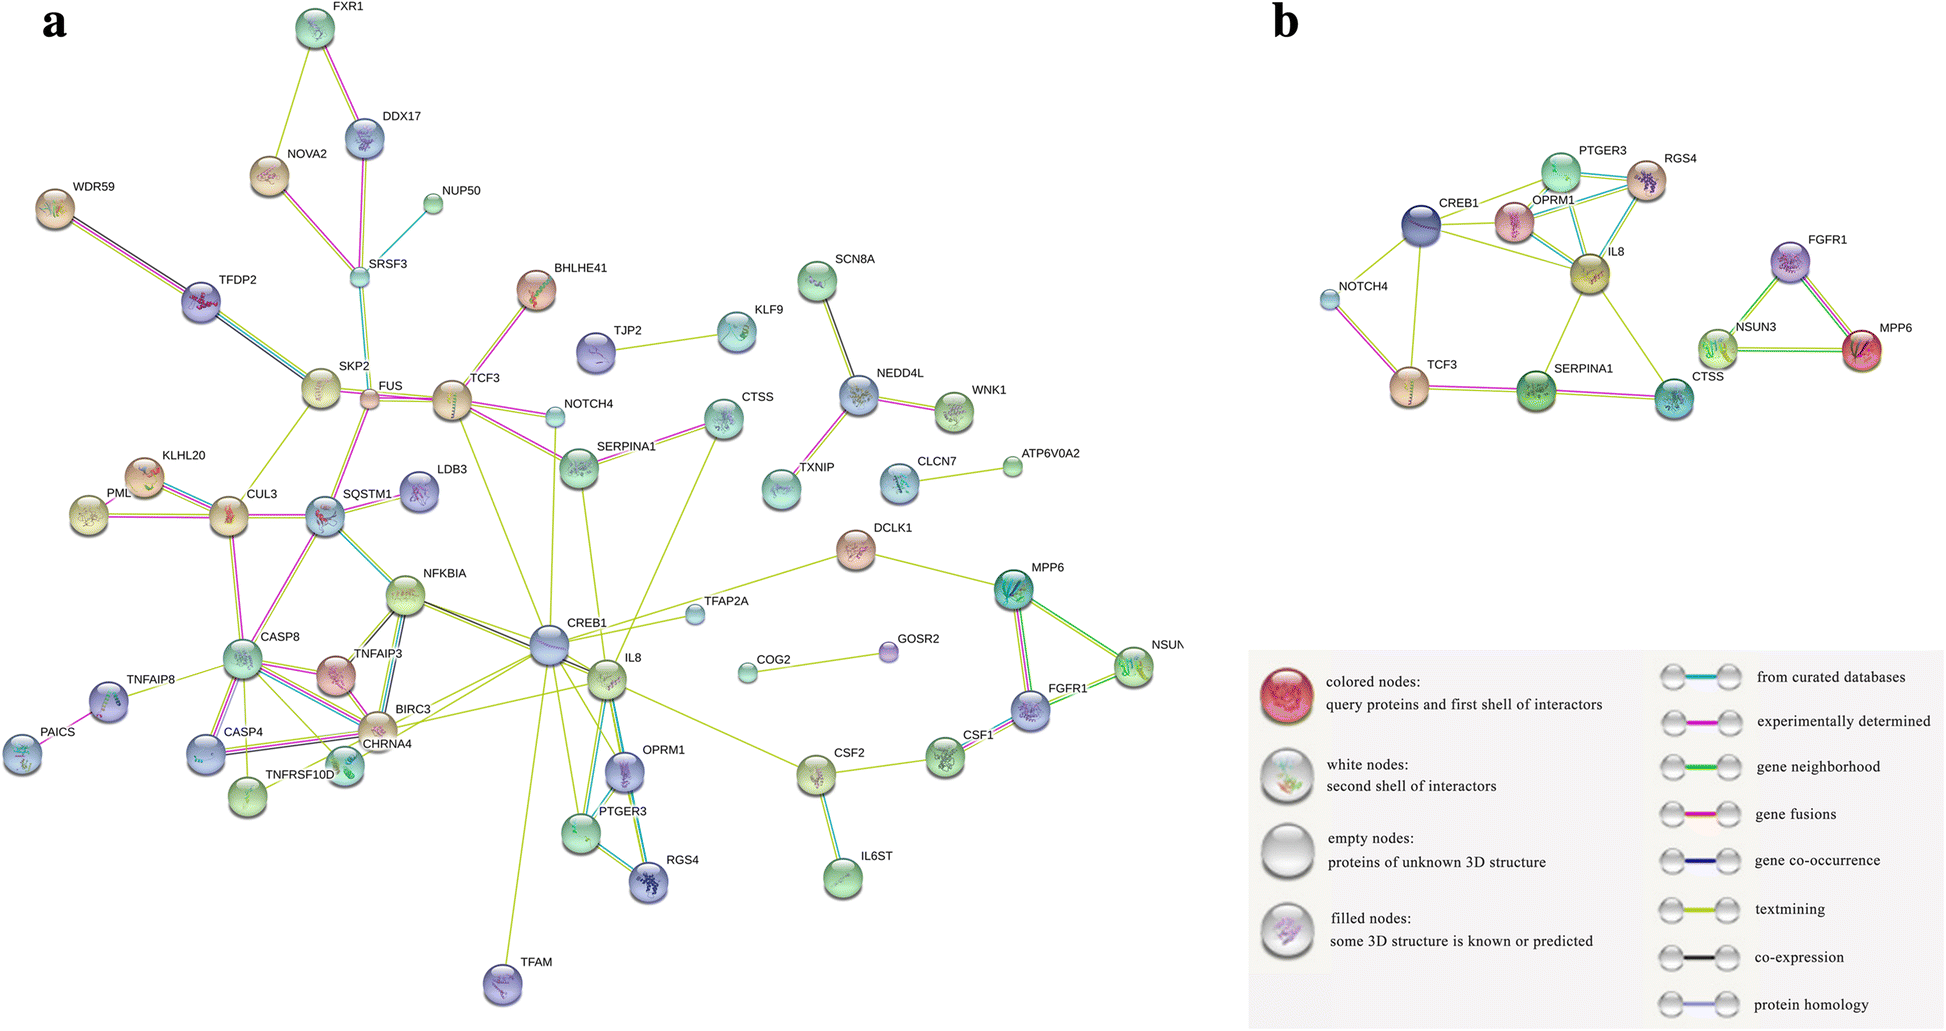 plant dcl proteins In addition to sirnas, antiviral rna silencing requires the participation of at least four families of plant proteins, namely the dicer‐like (dcl) nucleases that process virus‐specific double‐stranded (ds) rna to sirnas, argonaute proteins (ago) that use sirnas as the sequence‐specific guide to cleave (slice) complementary single.